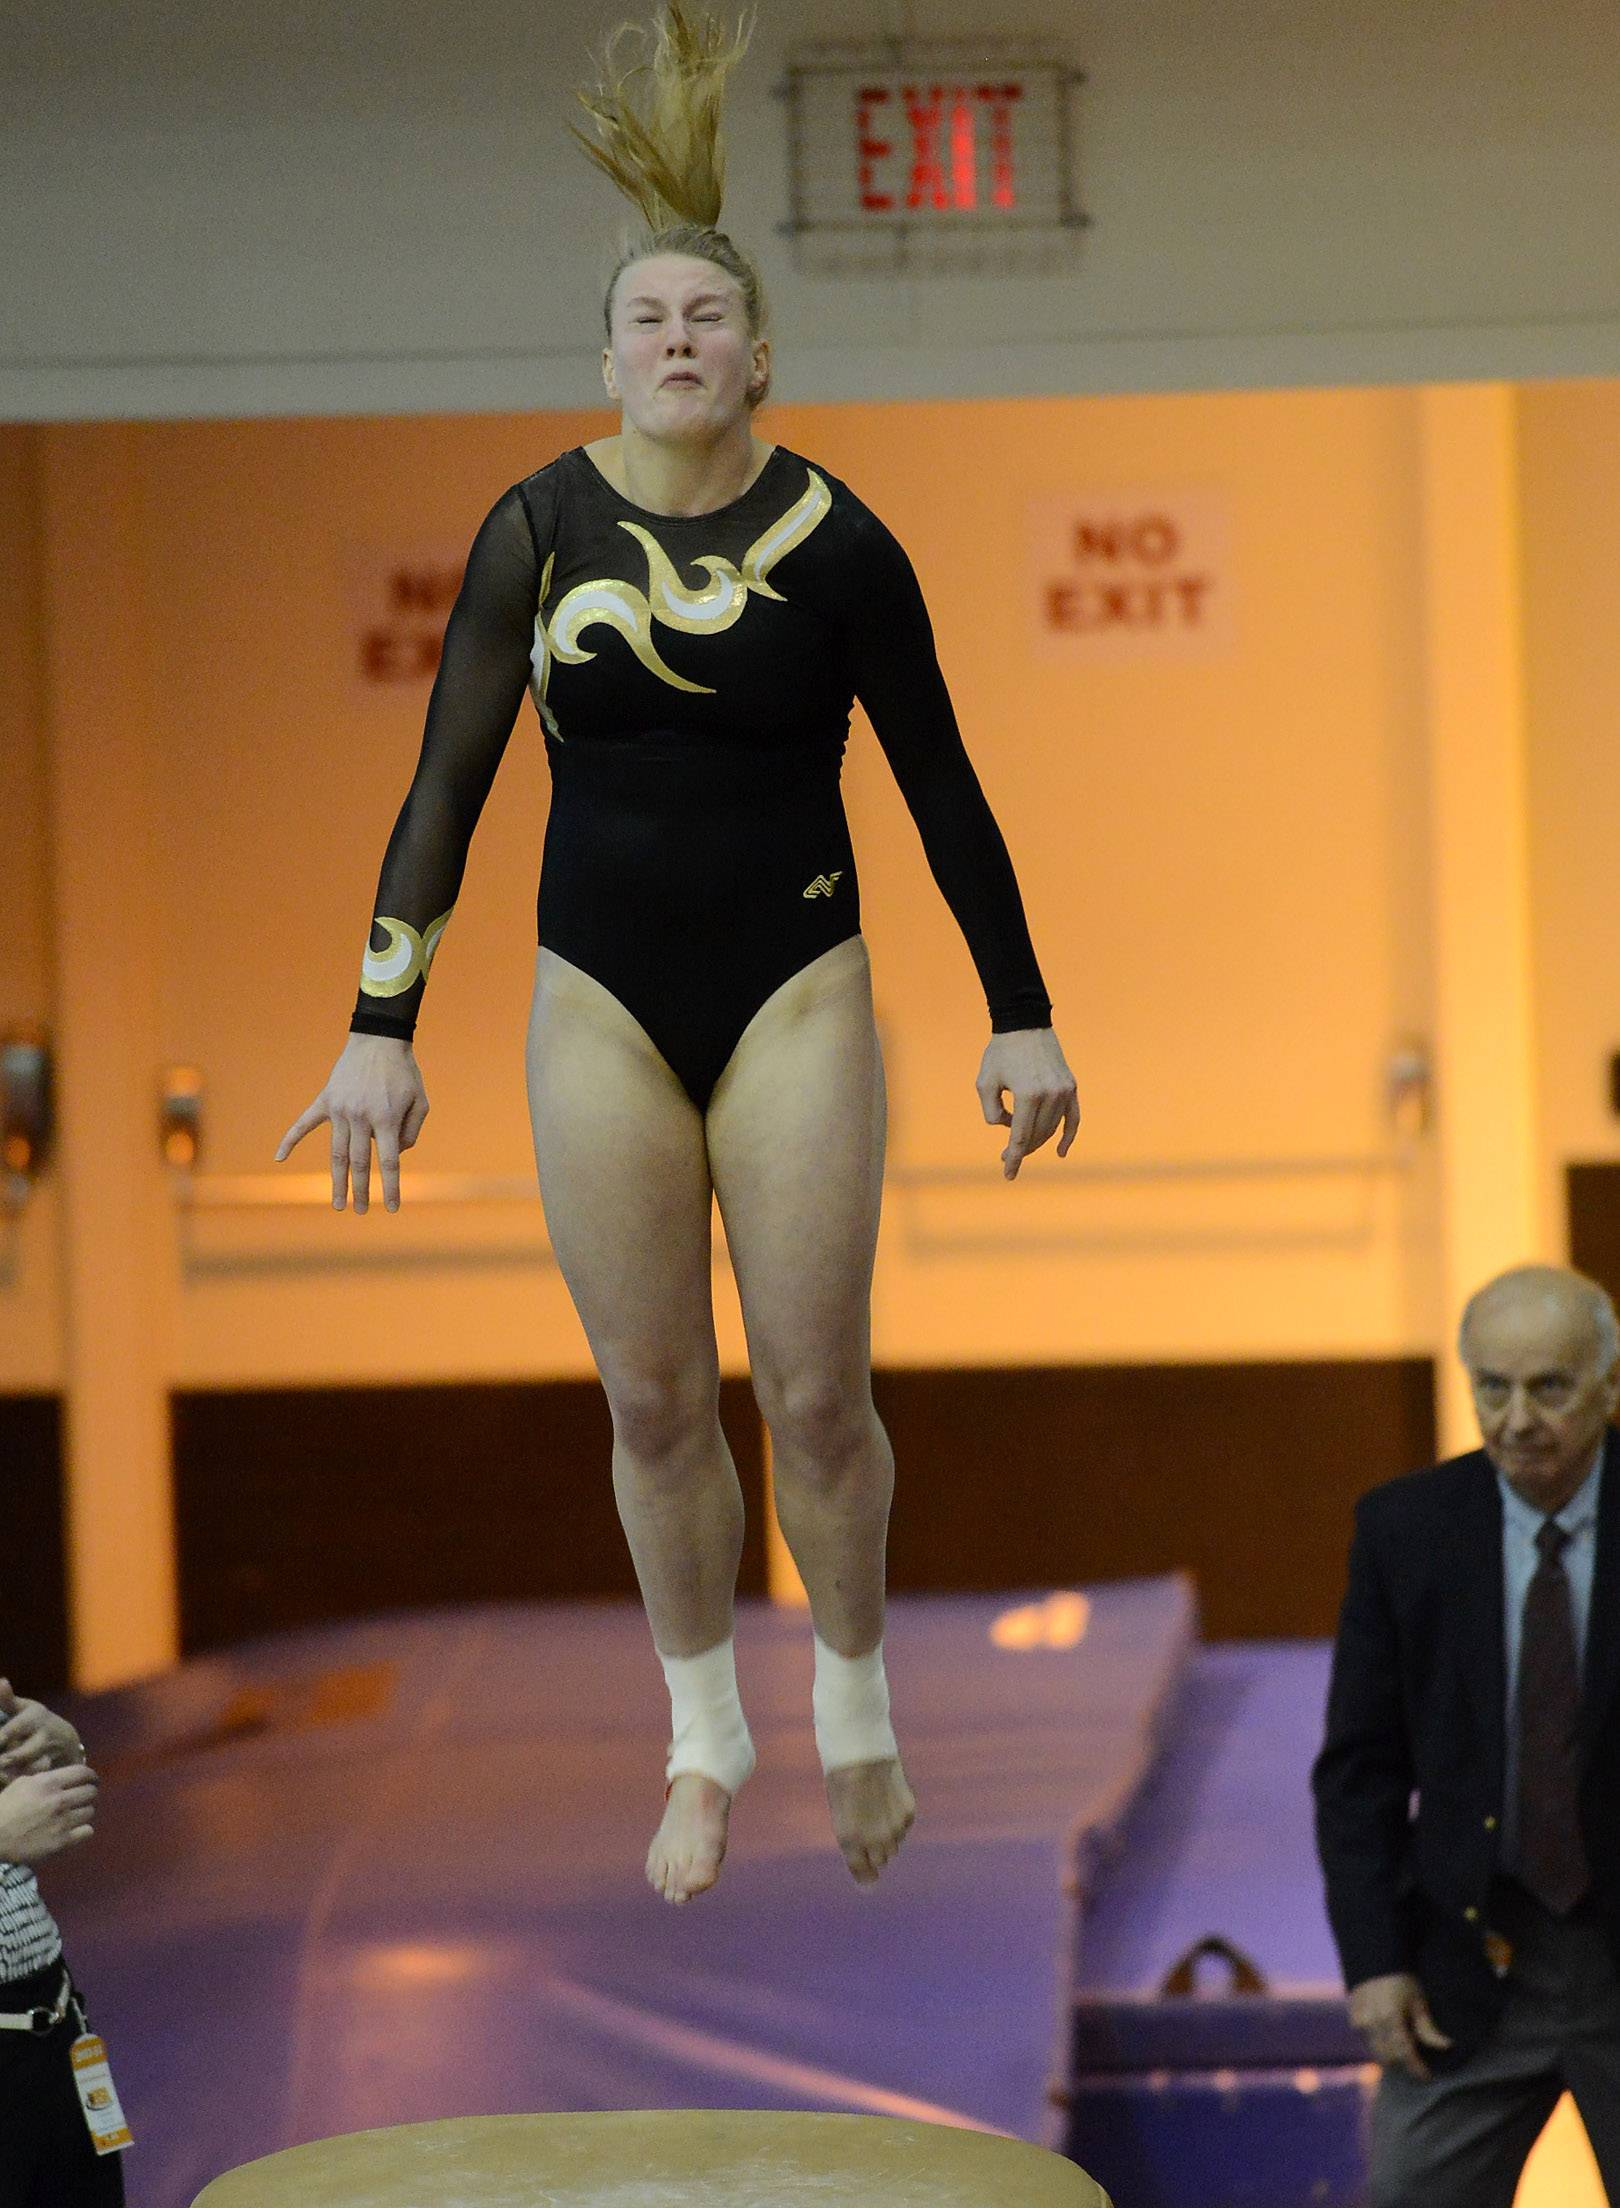 Allison Wahrman of Glenbard North finishes sixth in the vault during State Girls Gymnastics Saturday at Palatine High School.